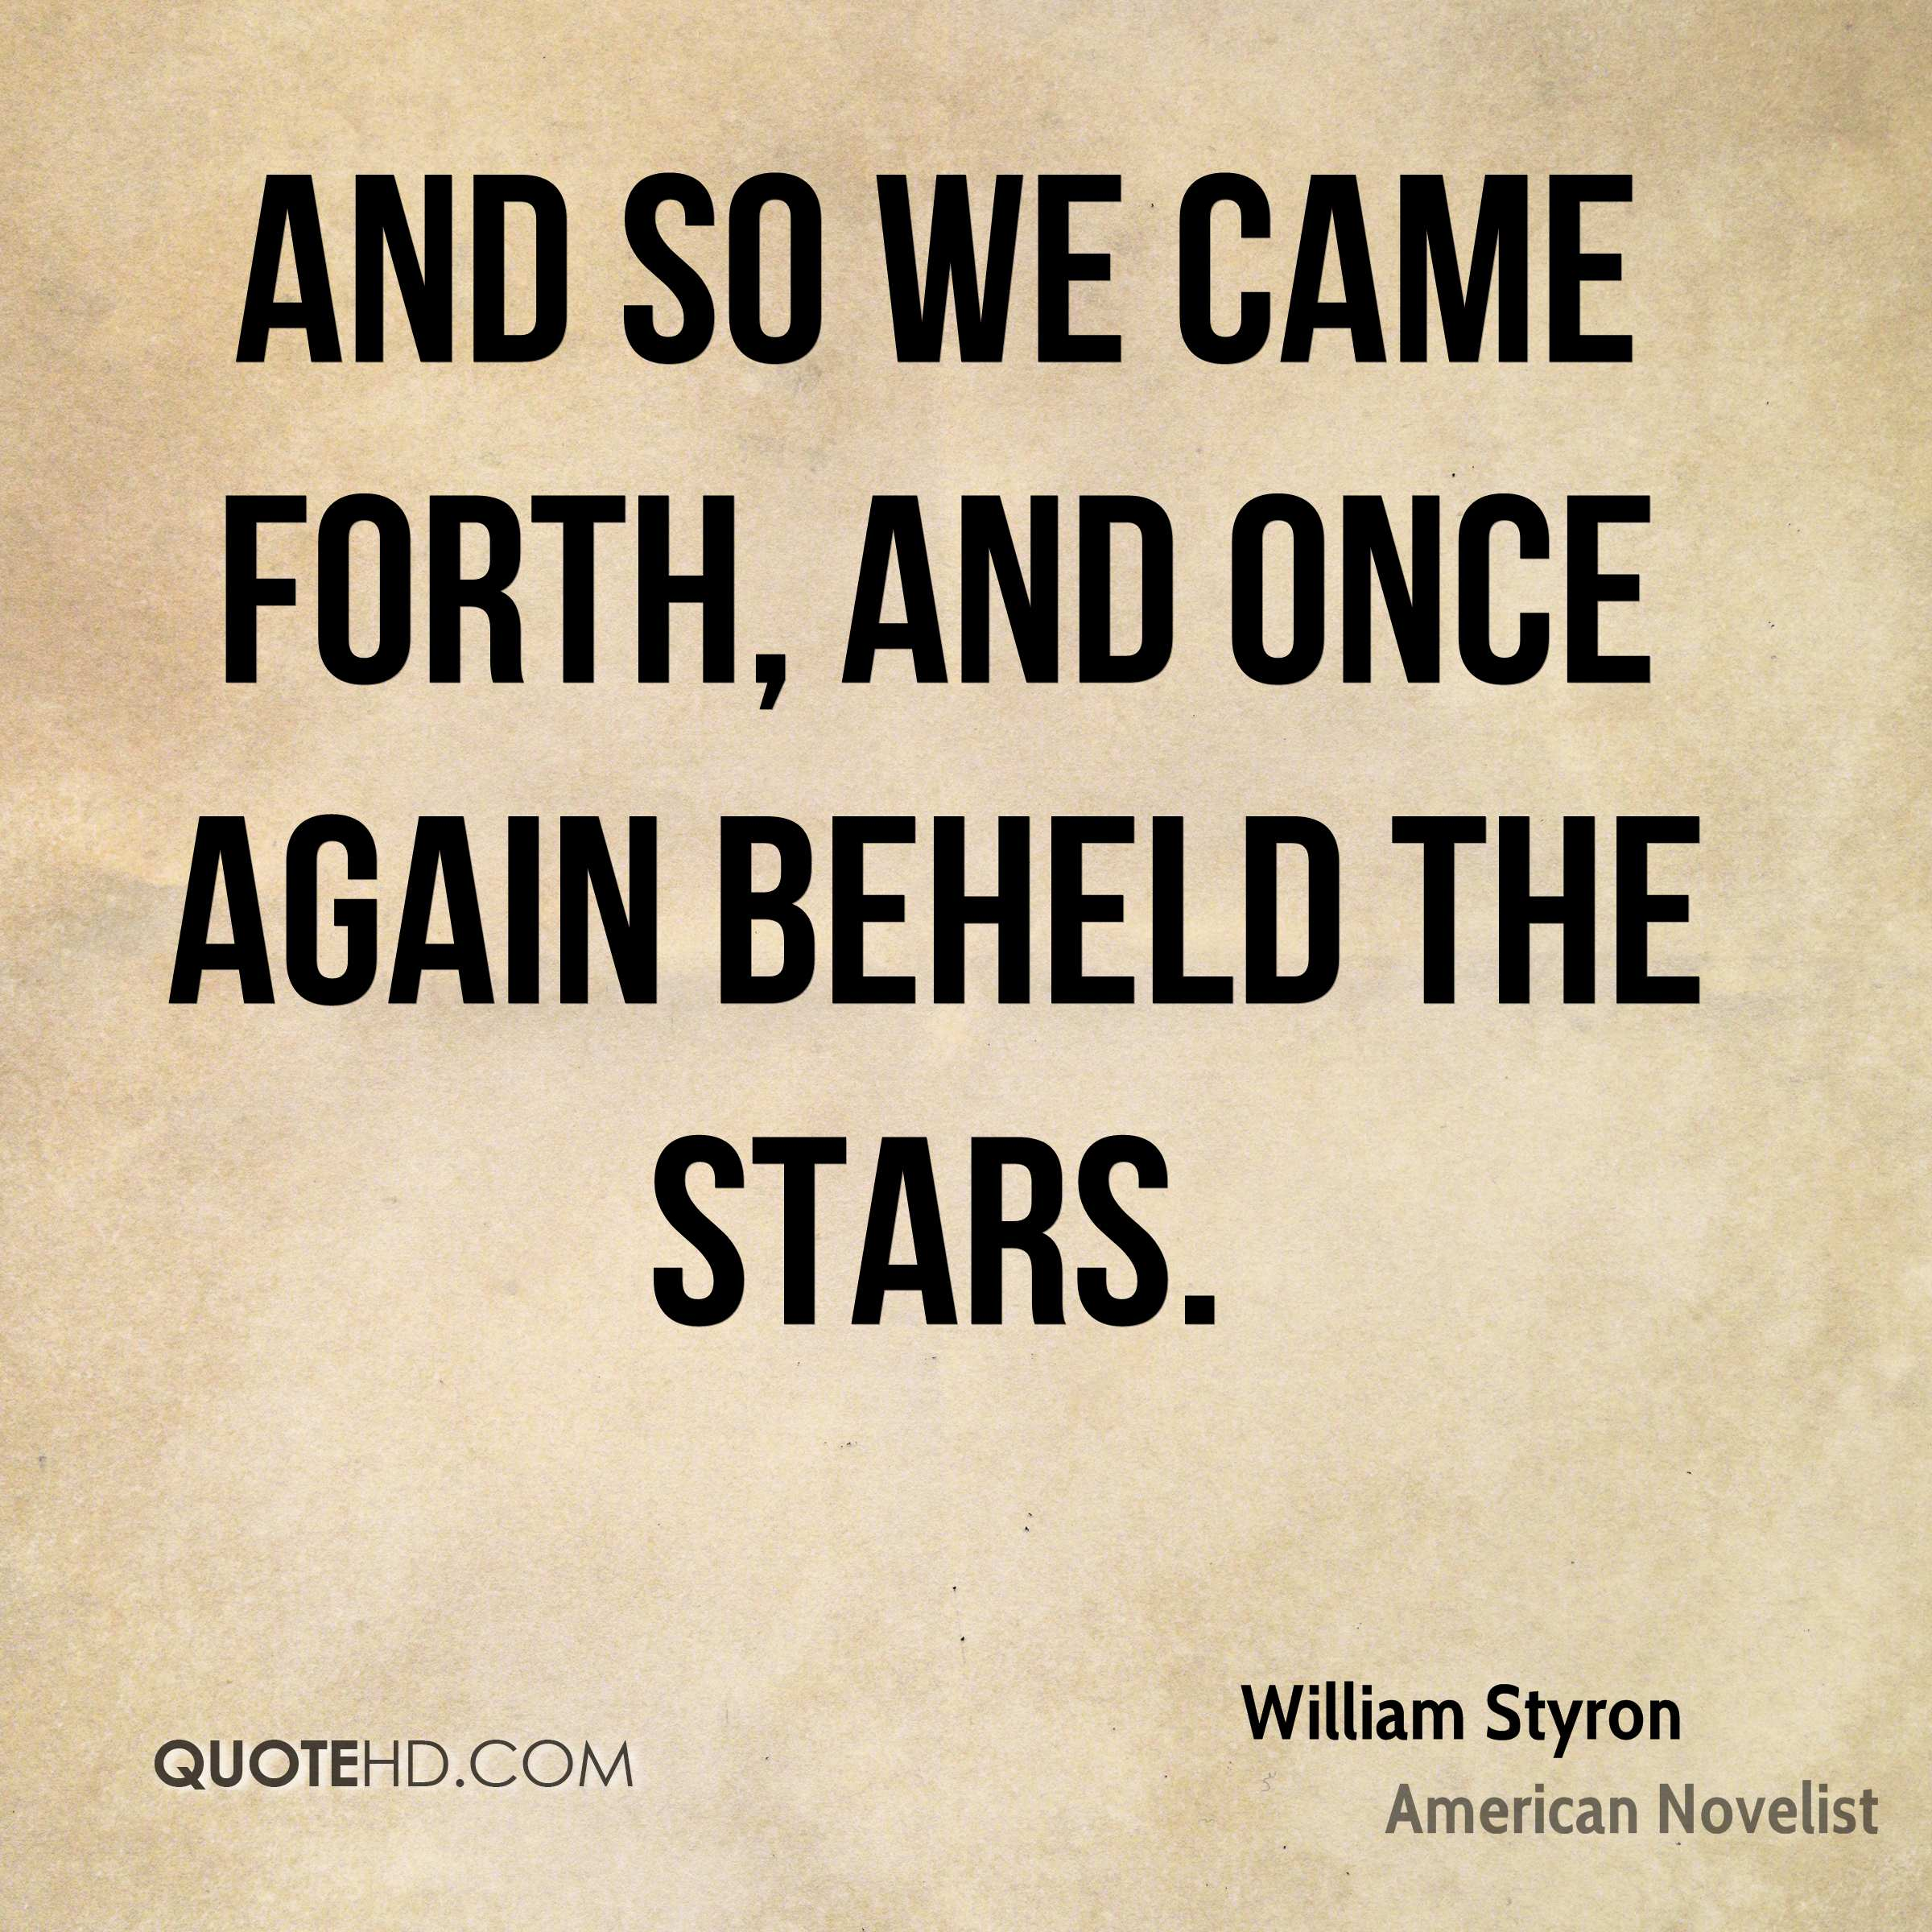 And so we came forth, and once again beheld the stars.